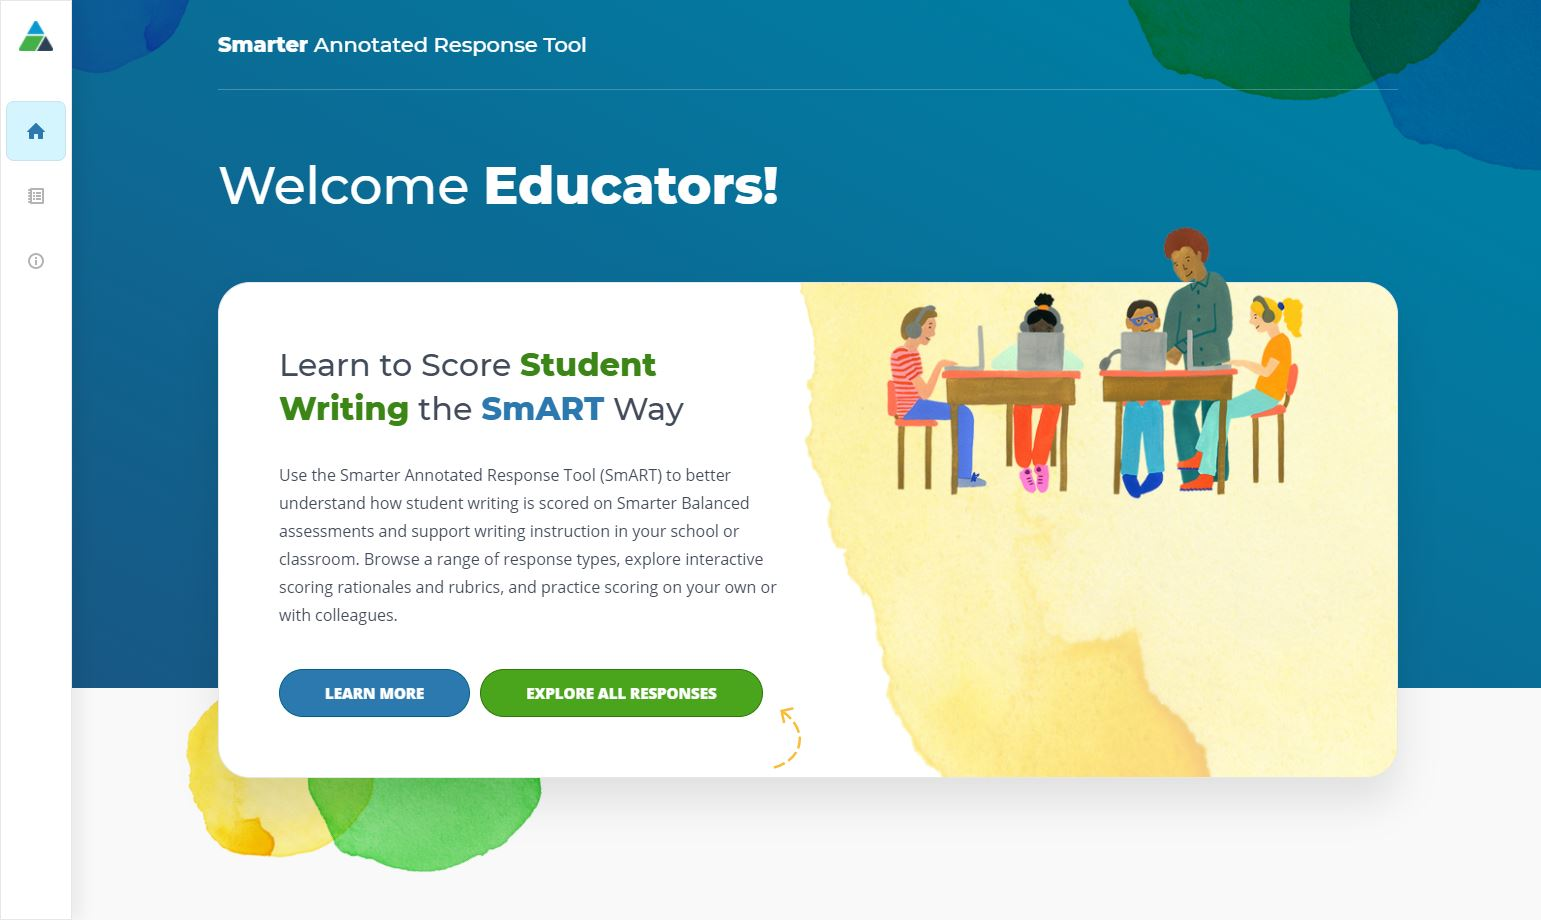 Smarter Annotated Student Response Tool (SmART) home page